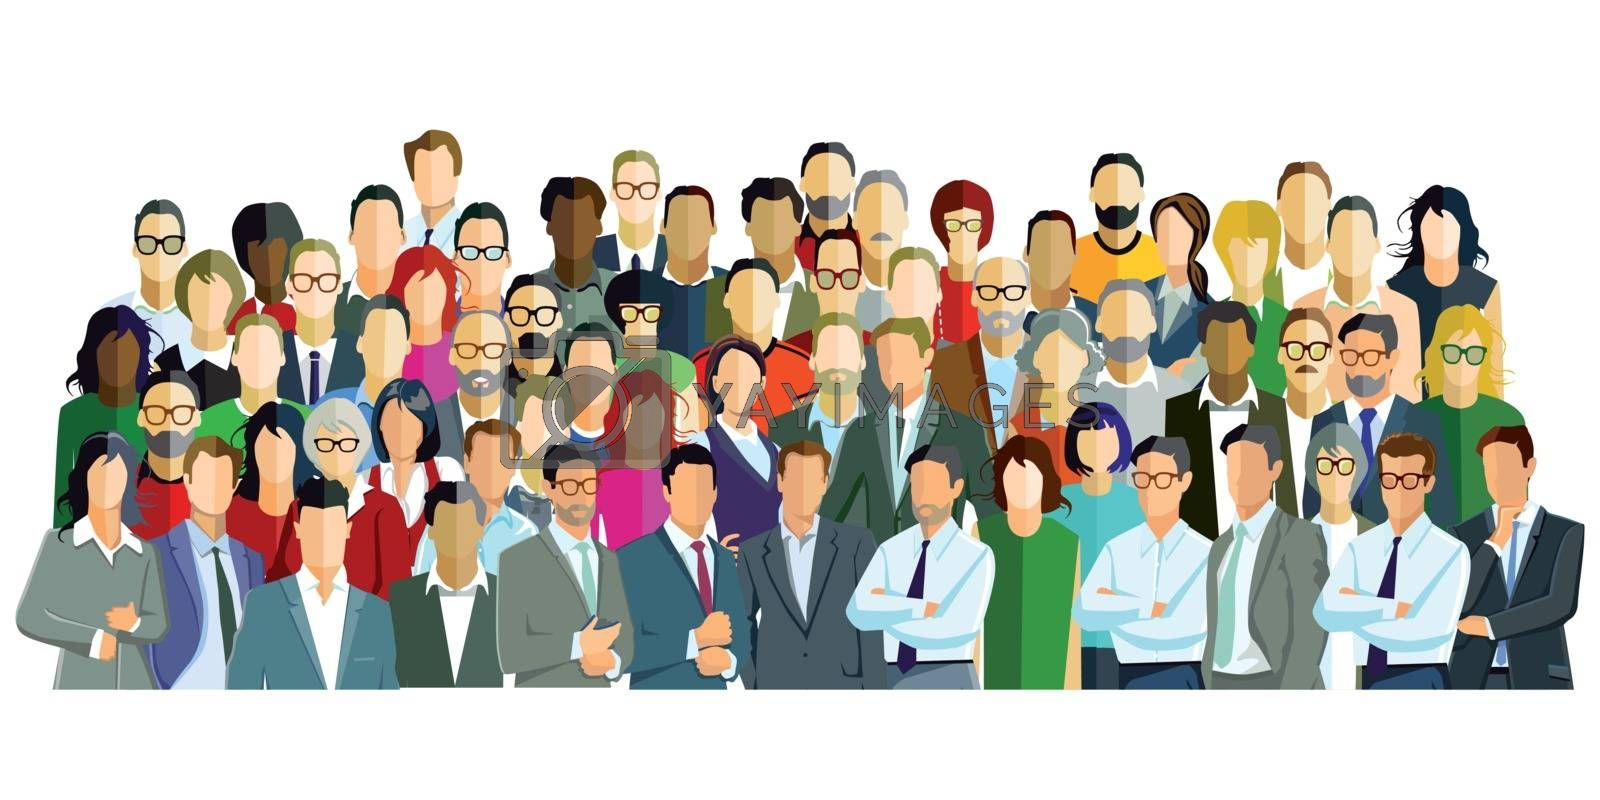 Group picture with different persons, Illustration